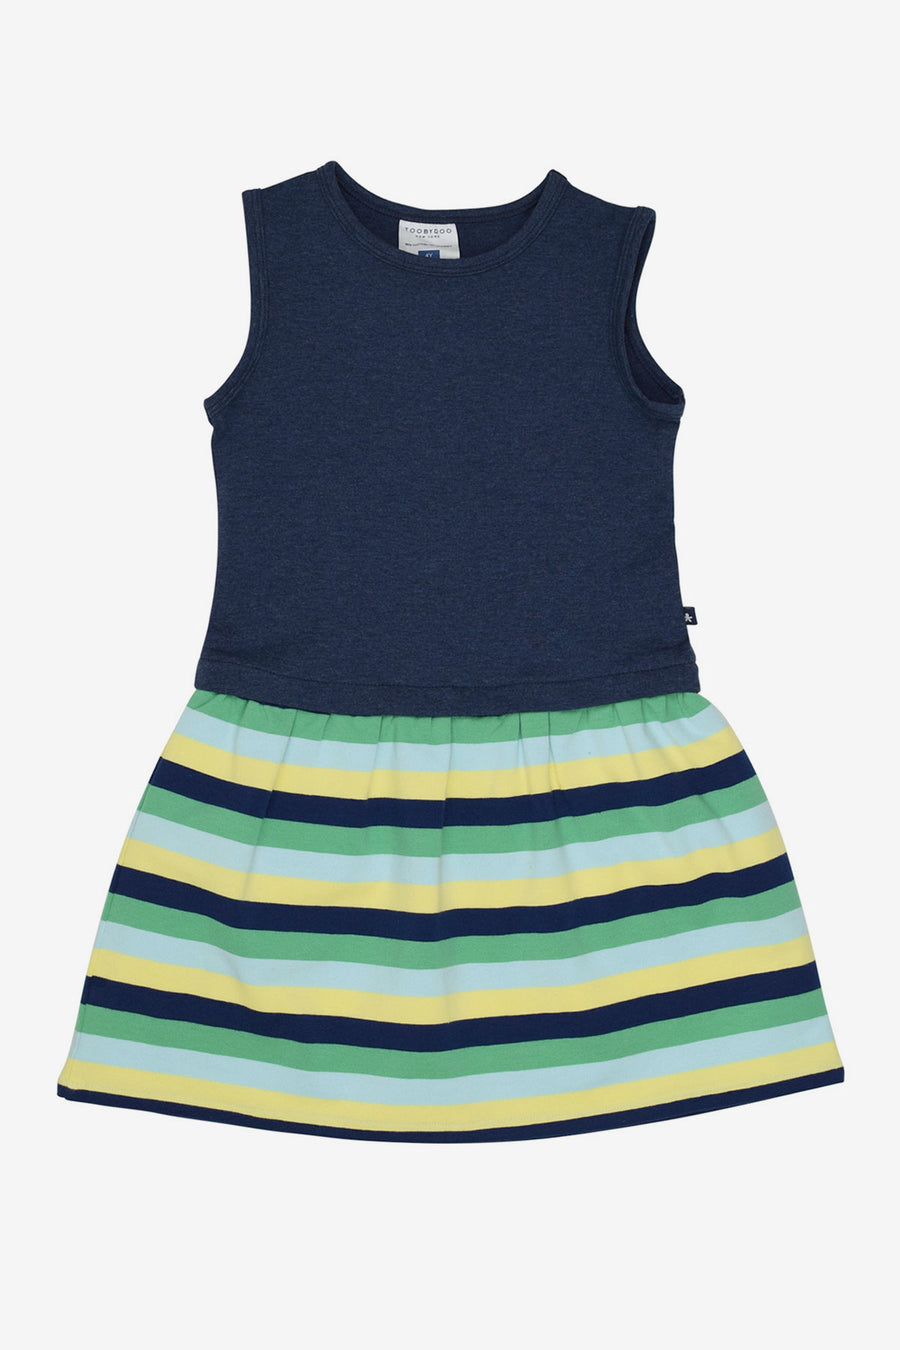 Toobydoo Marley Dress